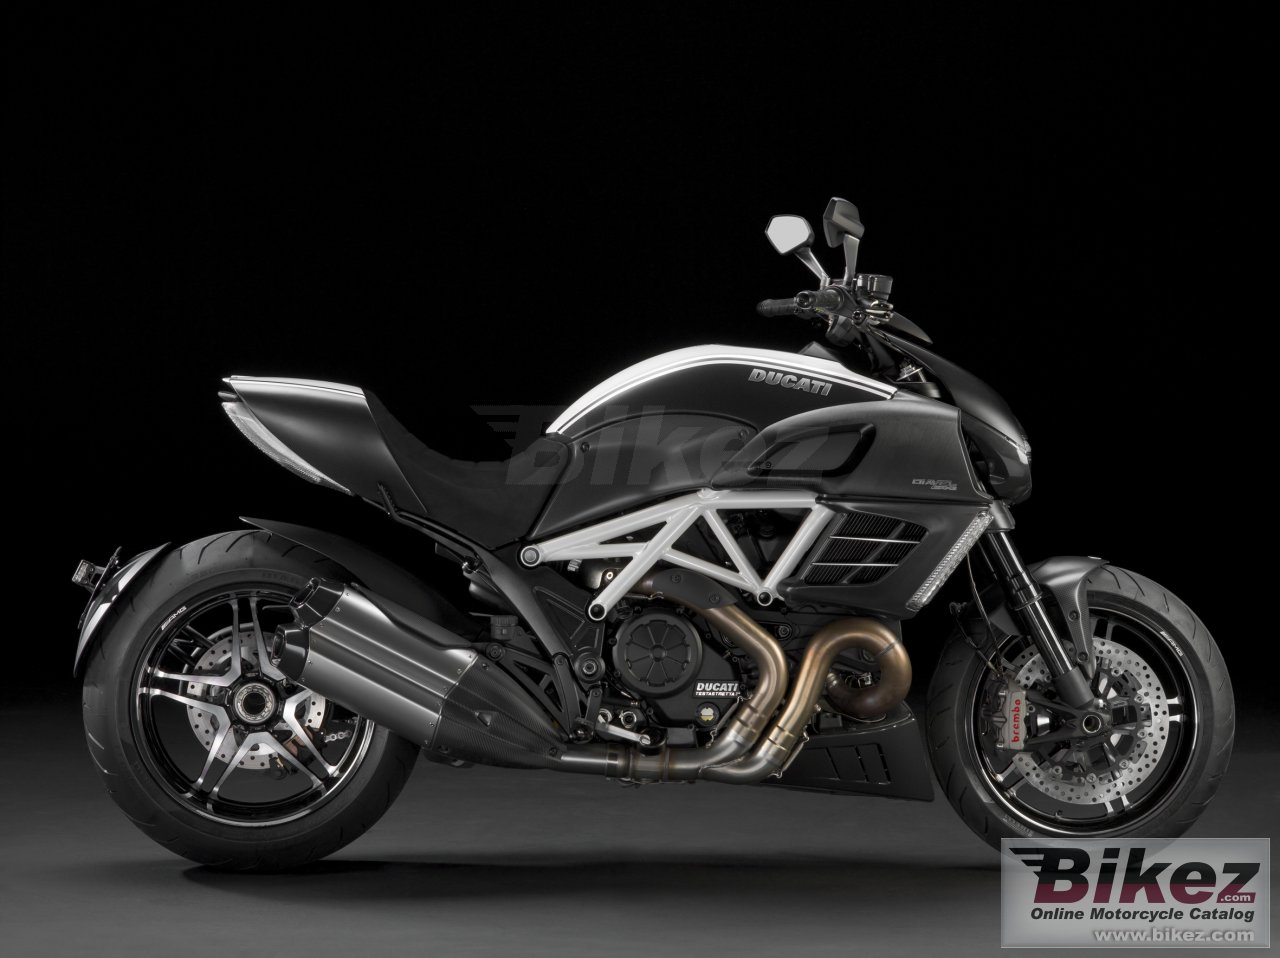 Big Ducati diavel amg picture and wallpaper from Bikez.com